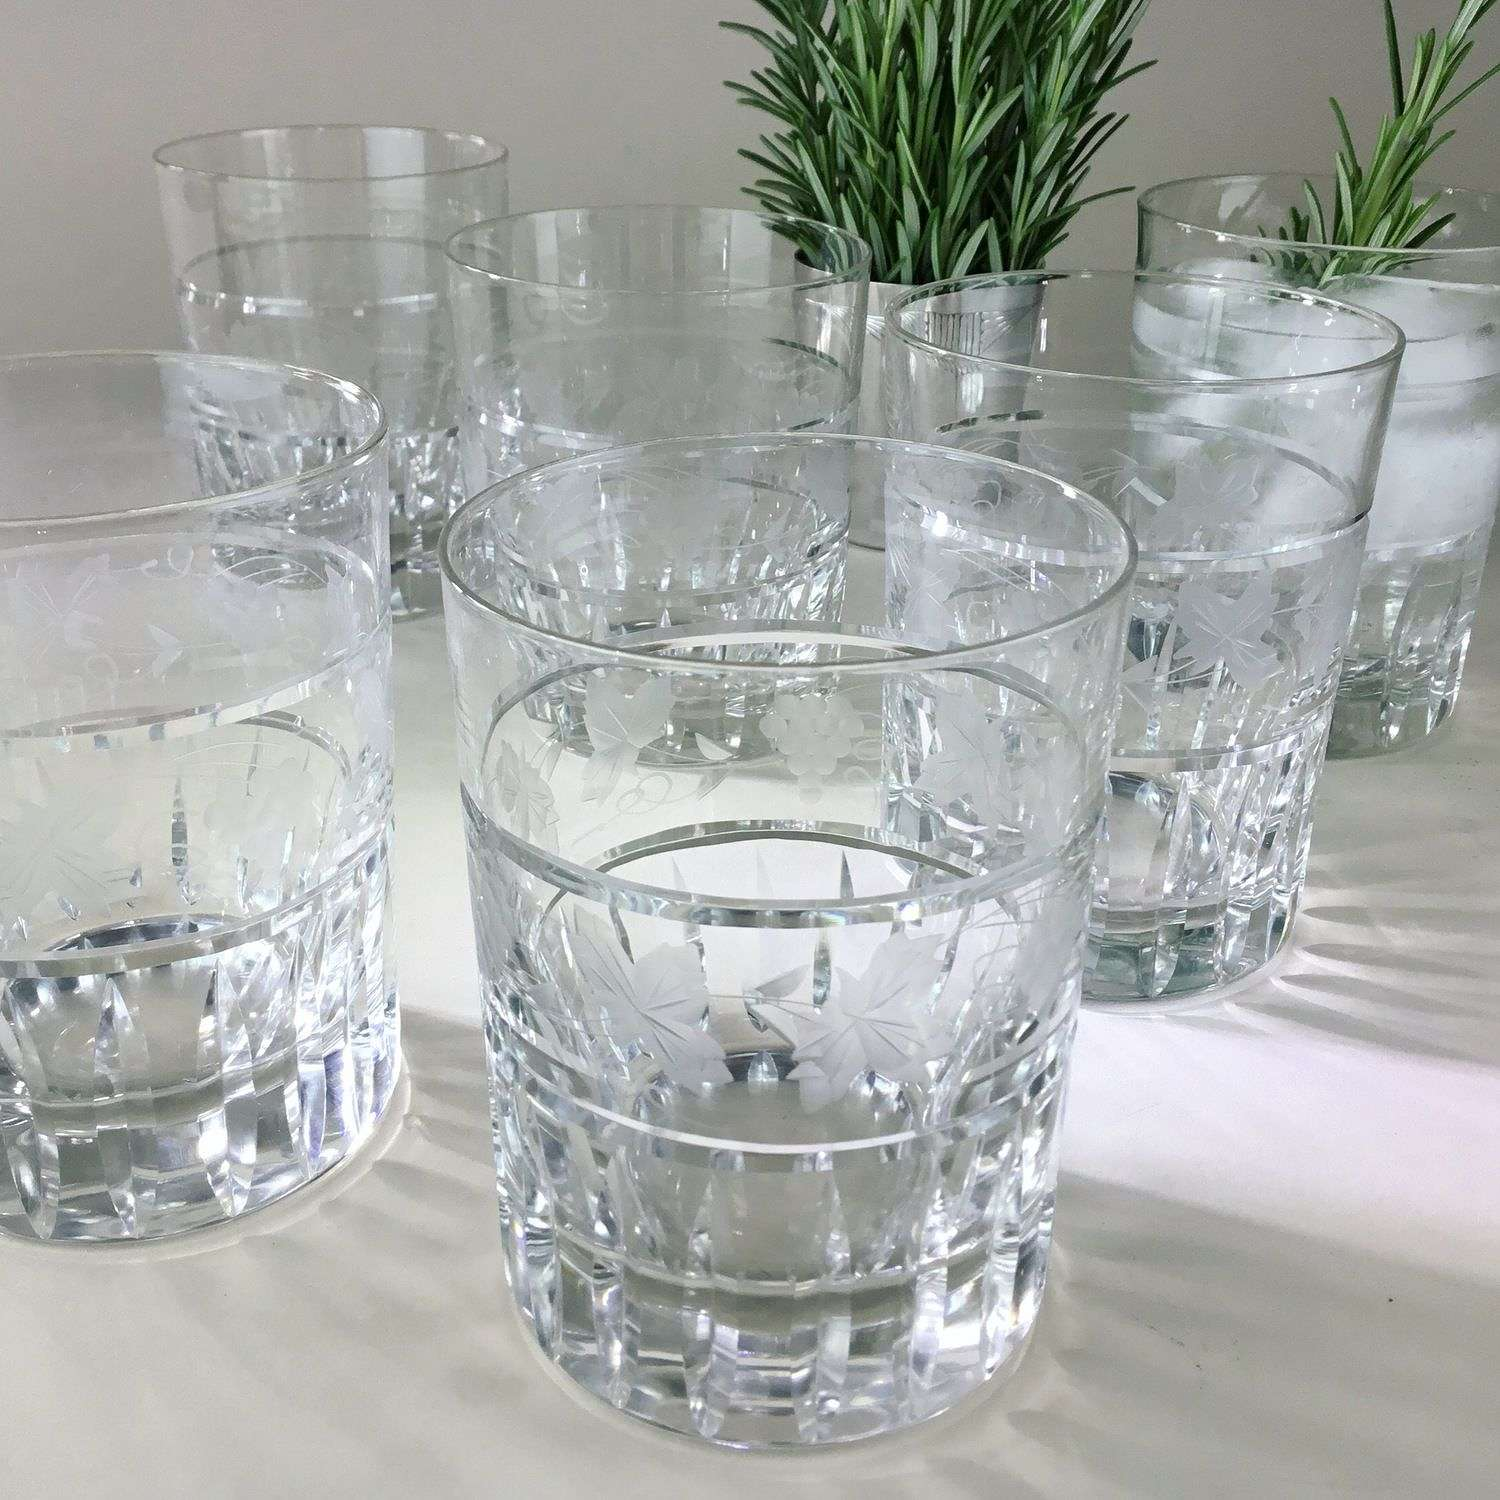 Striking set of six etched and cut glass tumblers